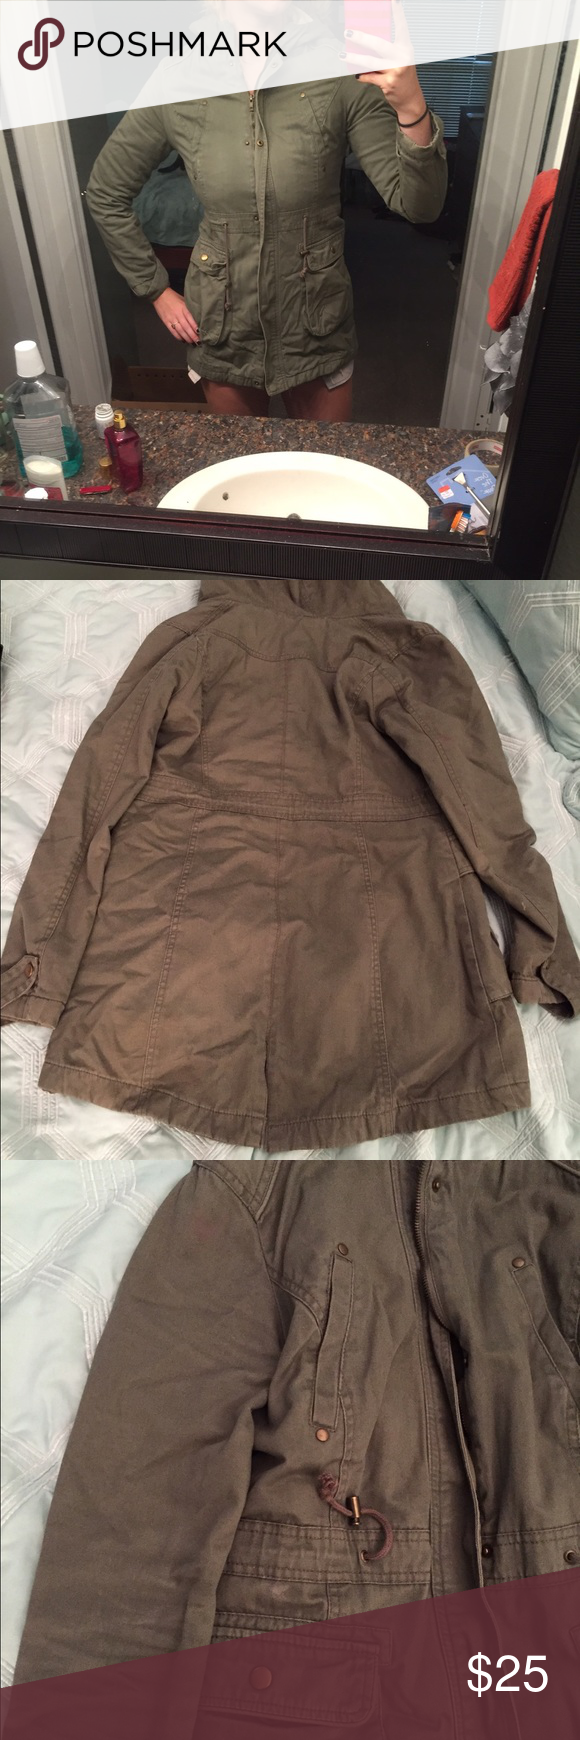 Green parka I absolutely LOVED this coat! I wore it a bunch and kept it in good condition. Couple spots of discoloration very very light red but still amazing coat. ALWAYS in style, AMAZING for fall. Keeps you warm in the fall great for layering too! BEST OFFER. Jackets & Coats